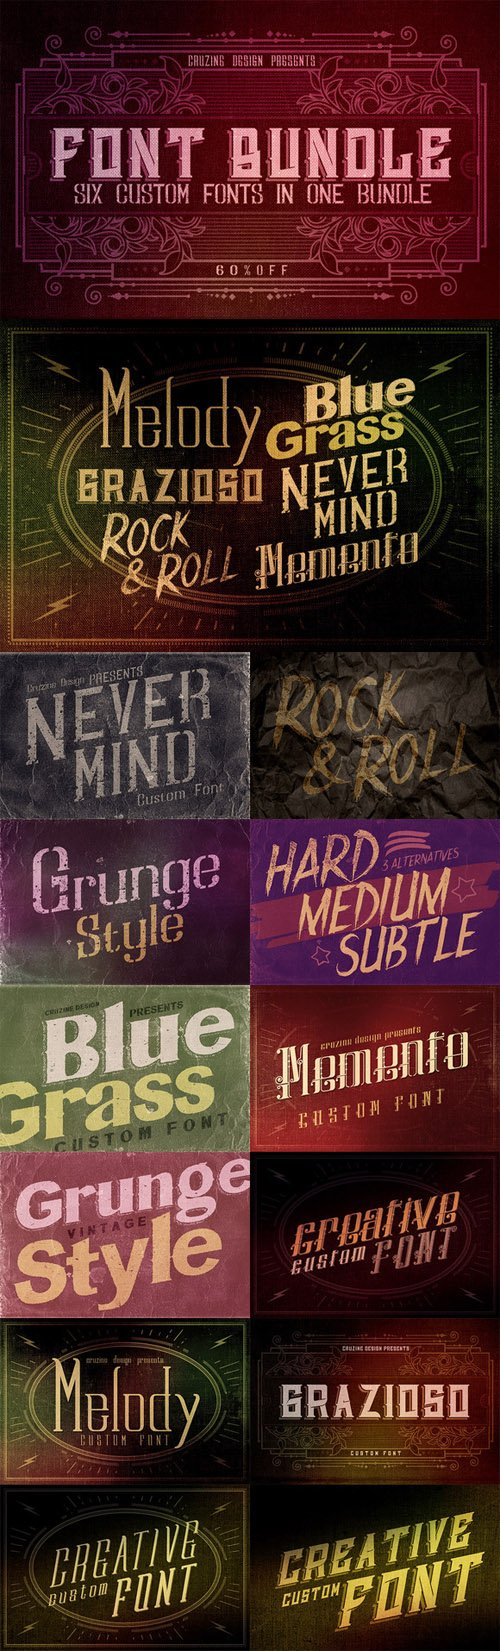 Creativemarket - 6 Custom Fonts in 1 Bundle 81809